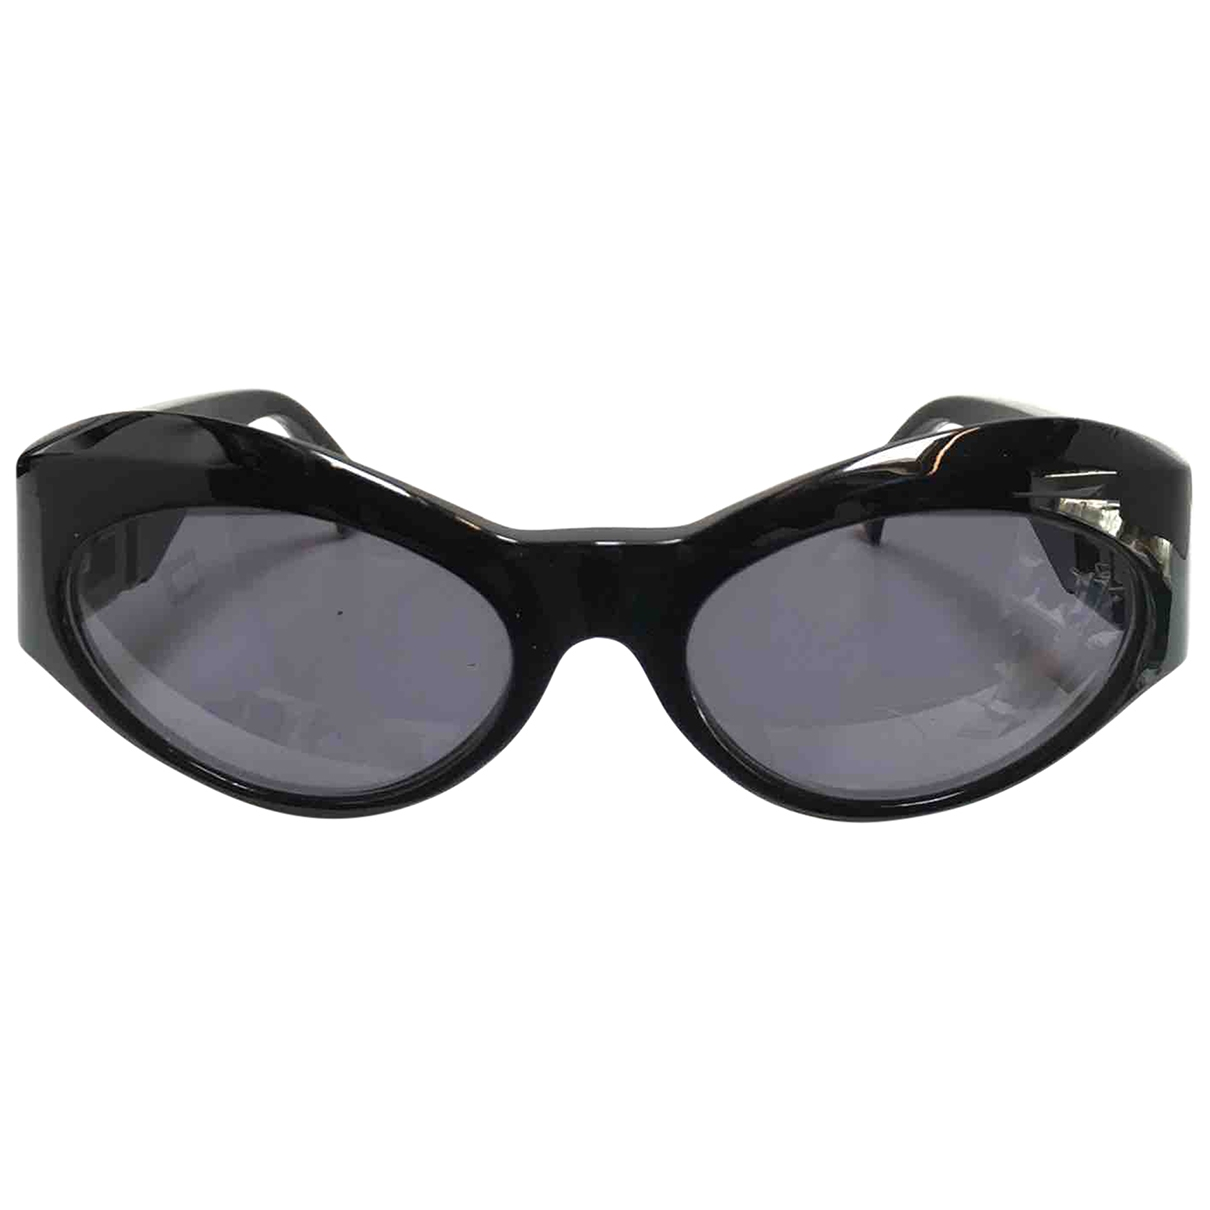 Gianni Versace \N Black Sunglasses for Women \N